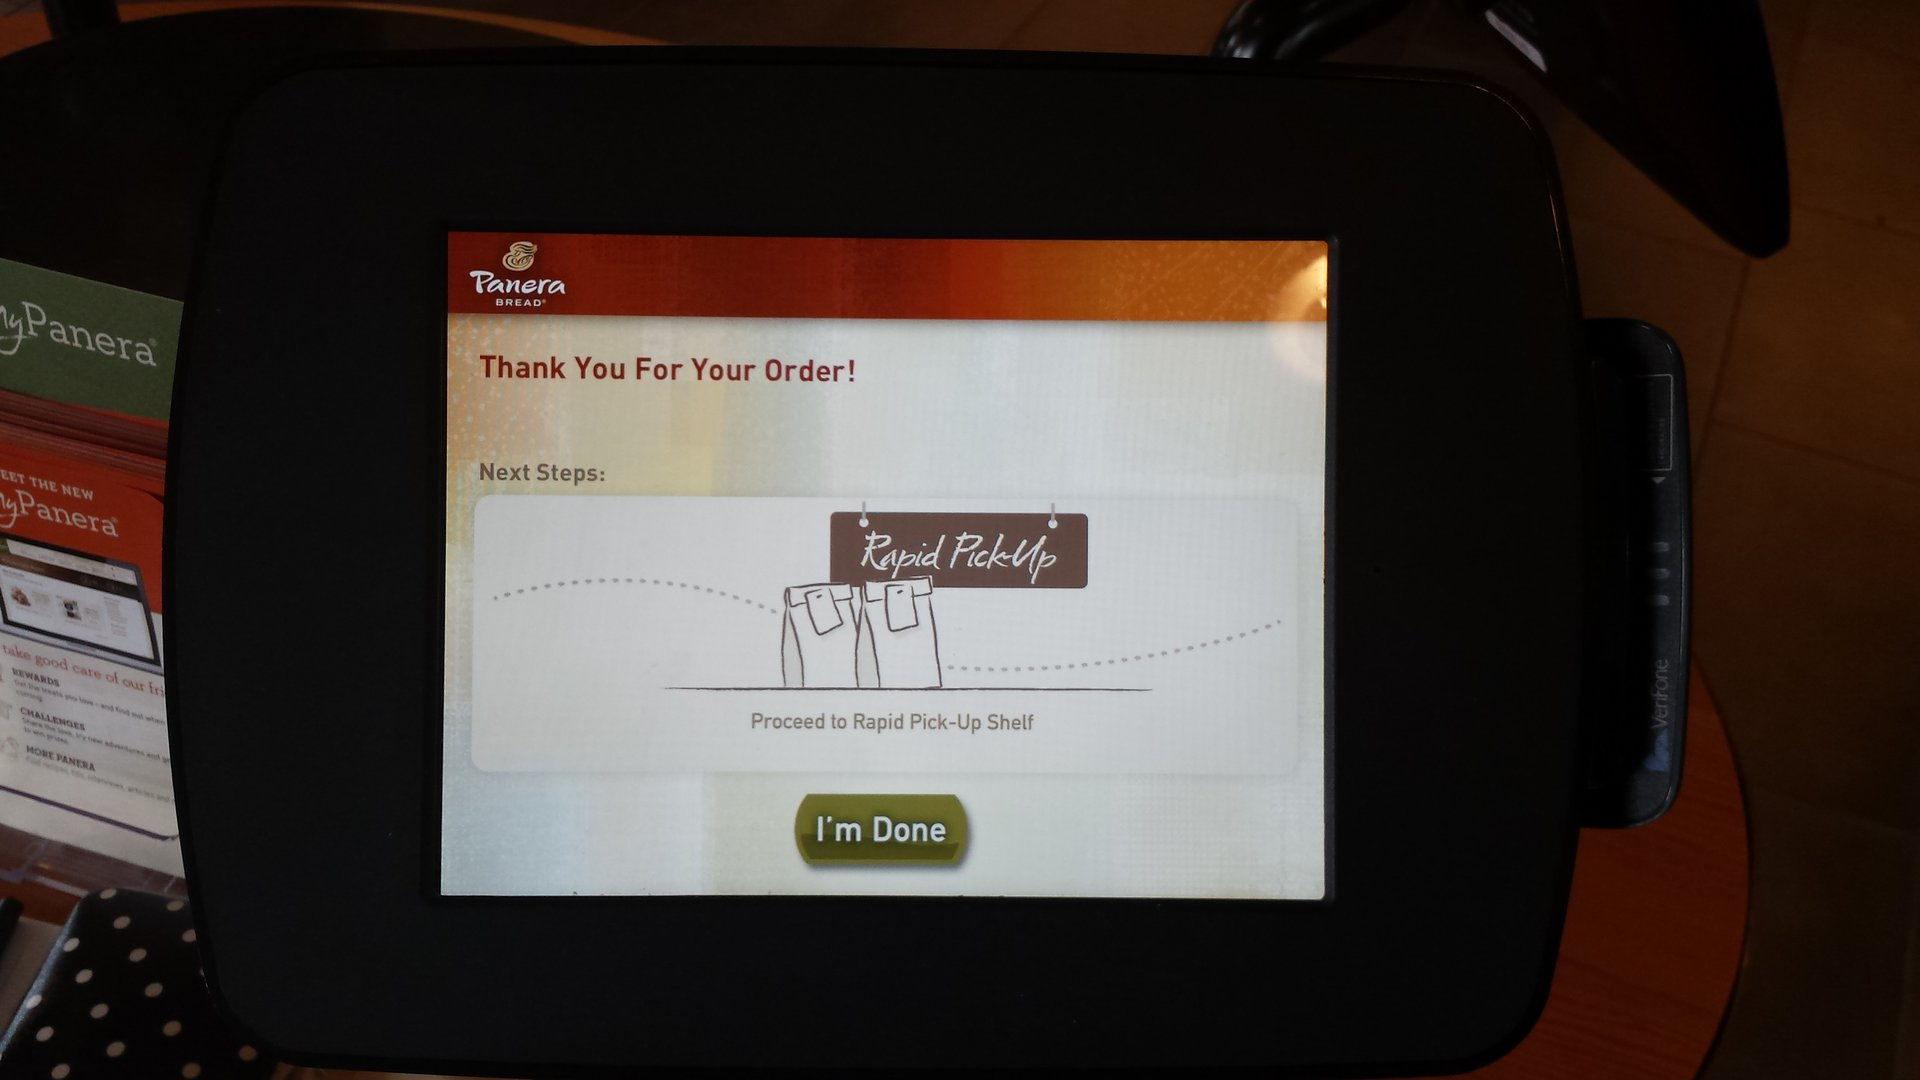 Need help editing or reordering an order? Learn how using MyPanera account you can make changes to your current or past catering orders, including adding to an order or repeating orders.